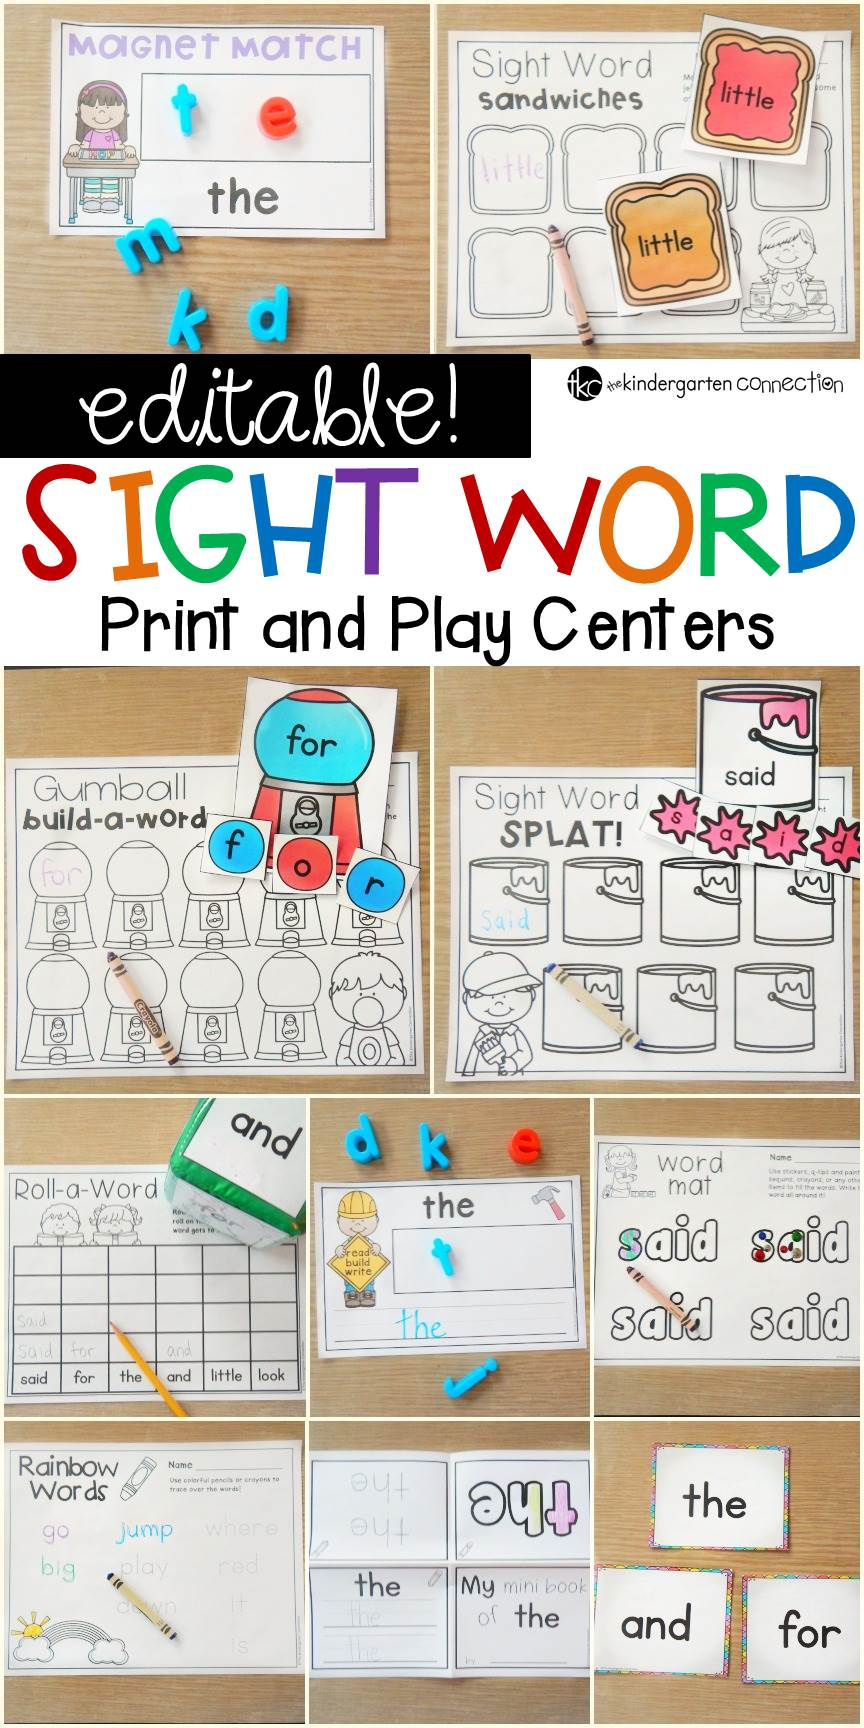 Editable sight word centers for any word list!